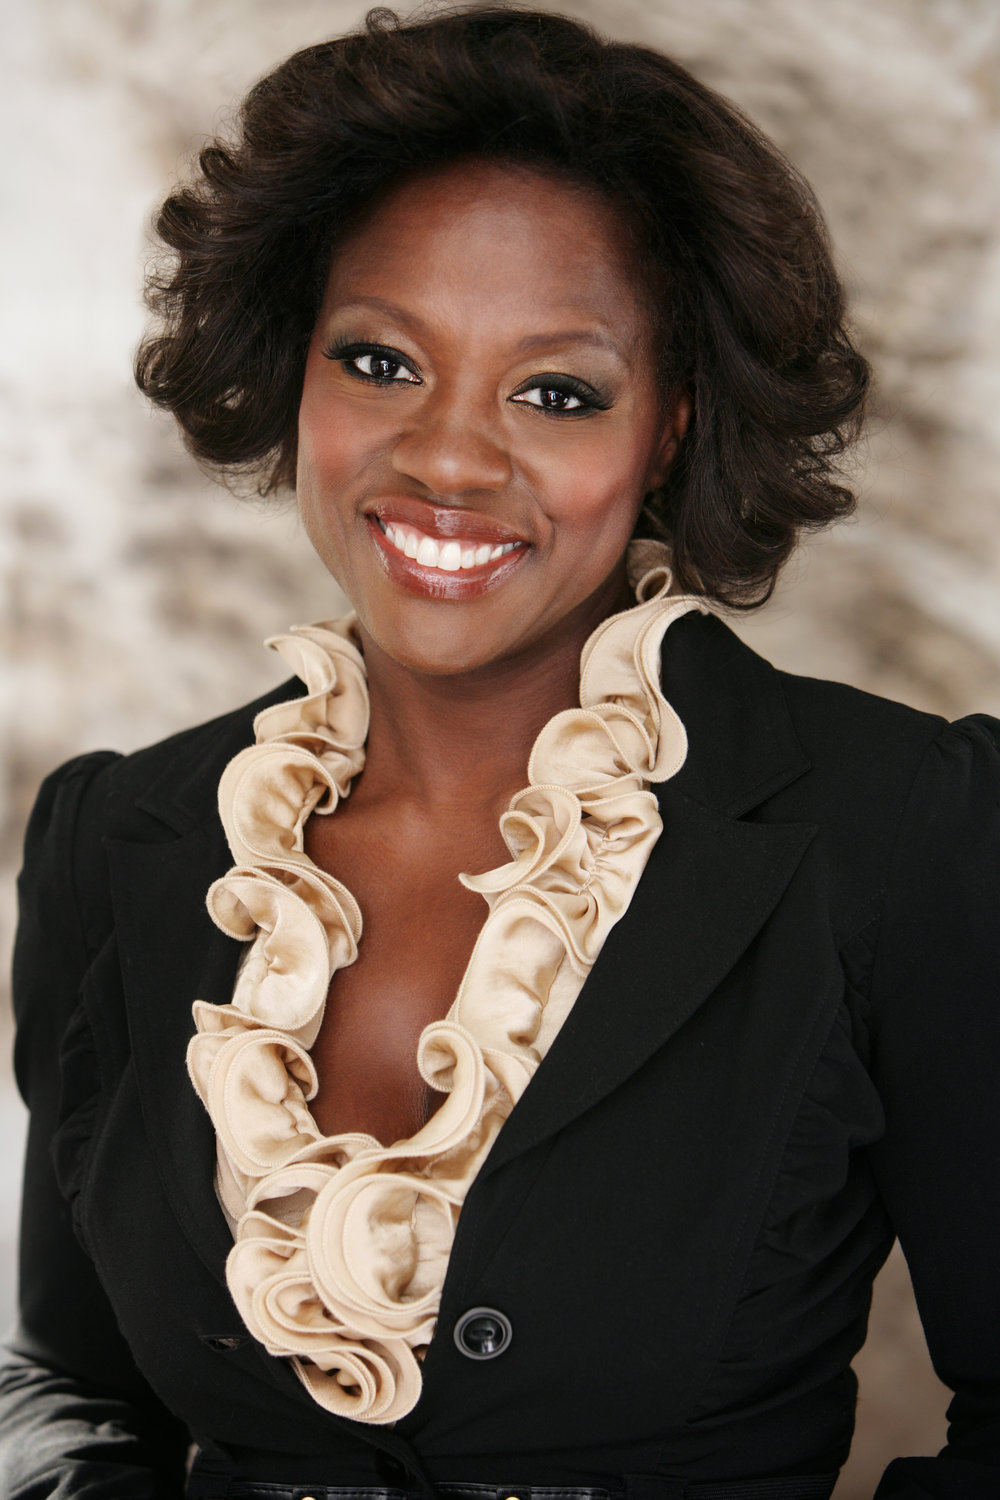 Viola Davis headshot by Shandon Photography